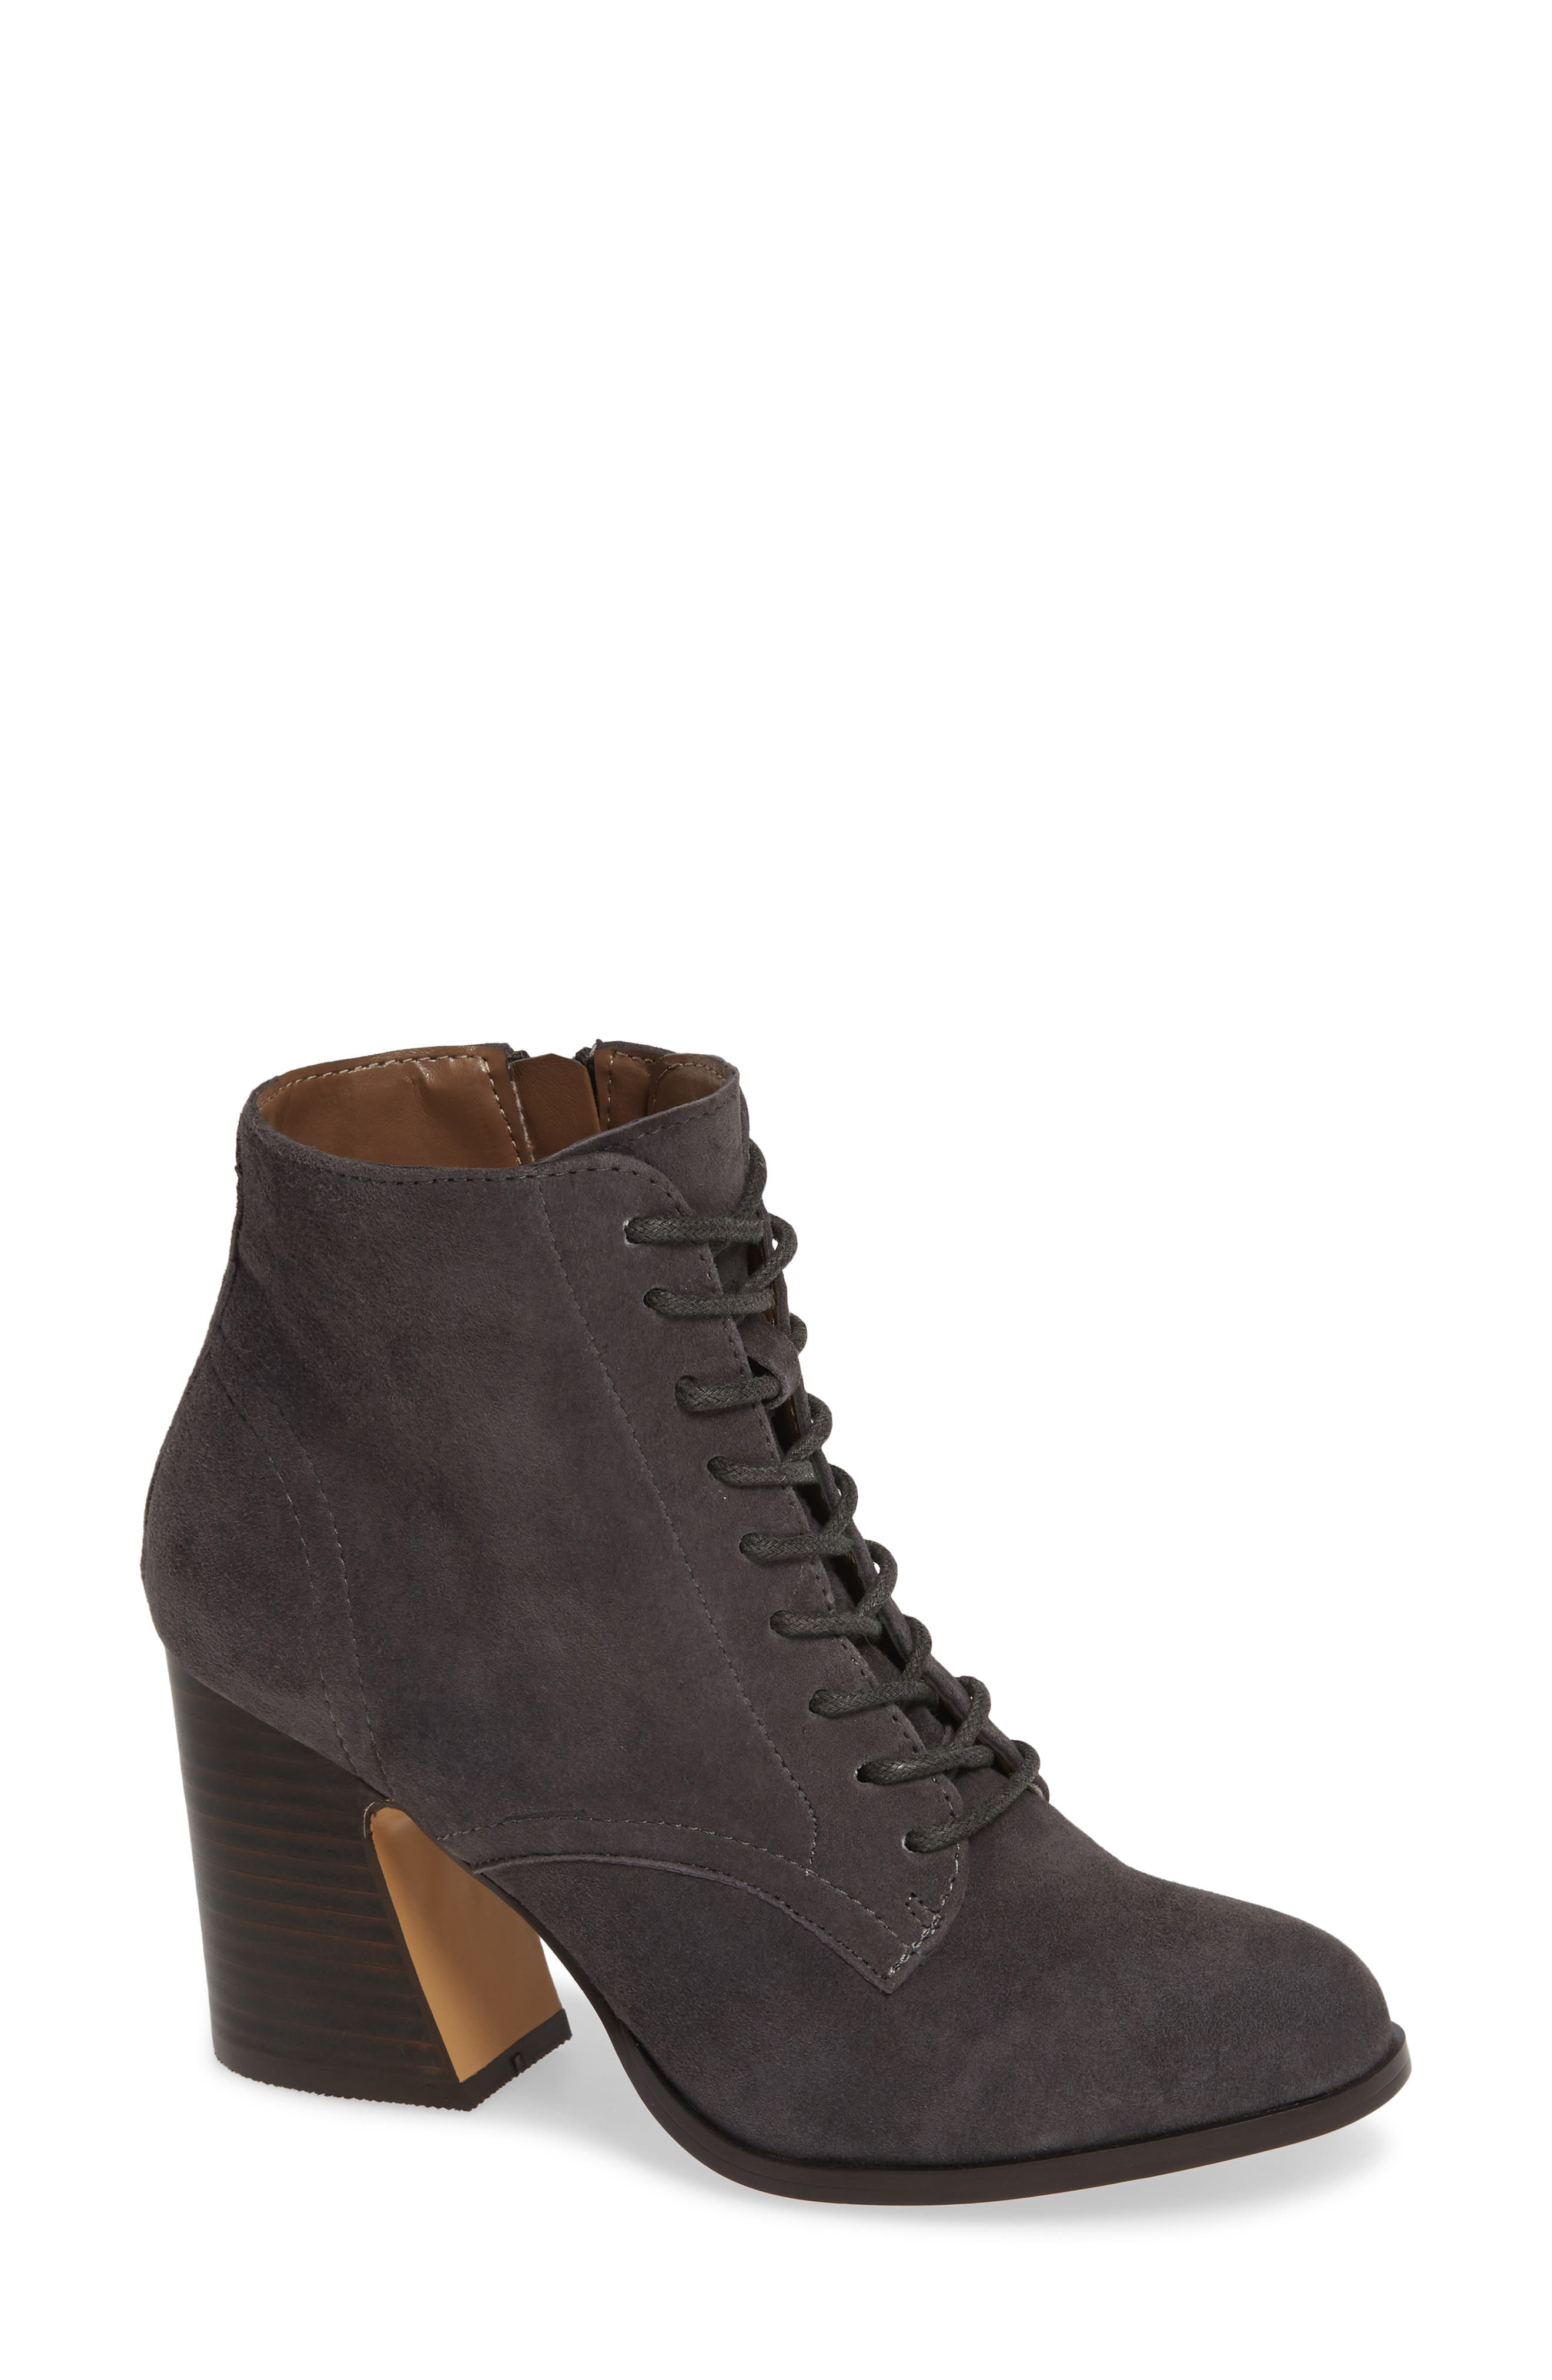 KENSIE Smith Lace-Up Bootie in Charcoal Suede